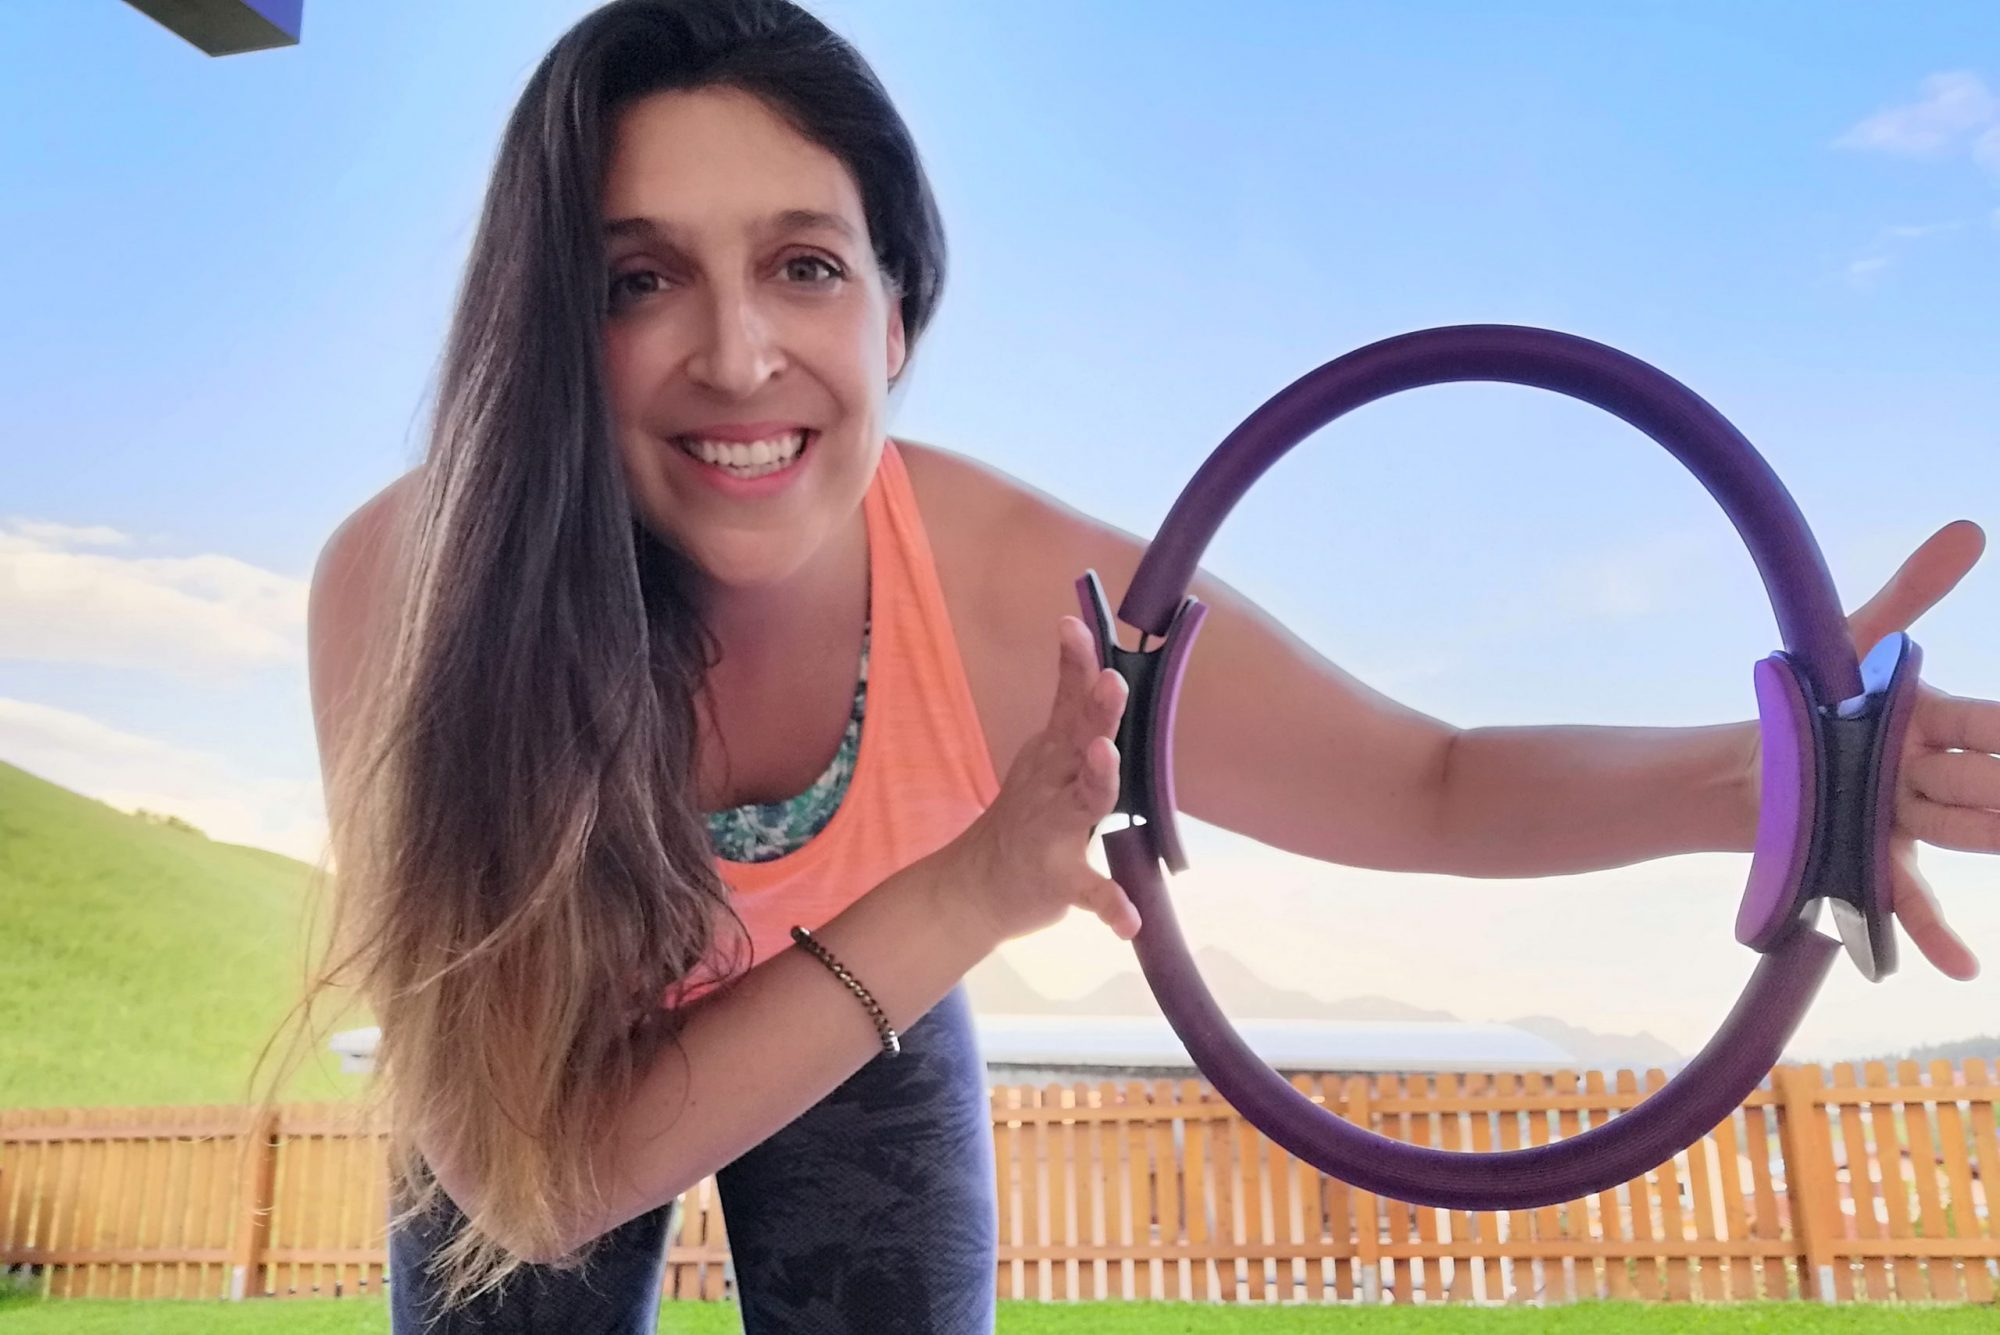 Claudia mit Pilatesring / Magic Circle